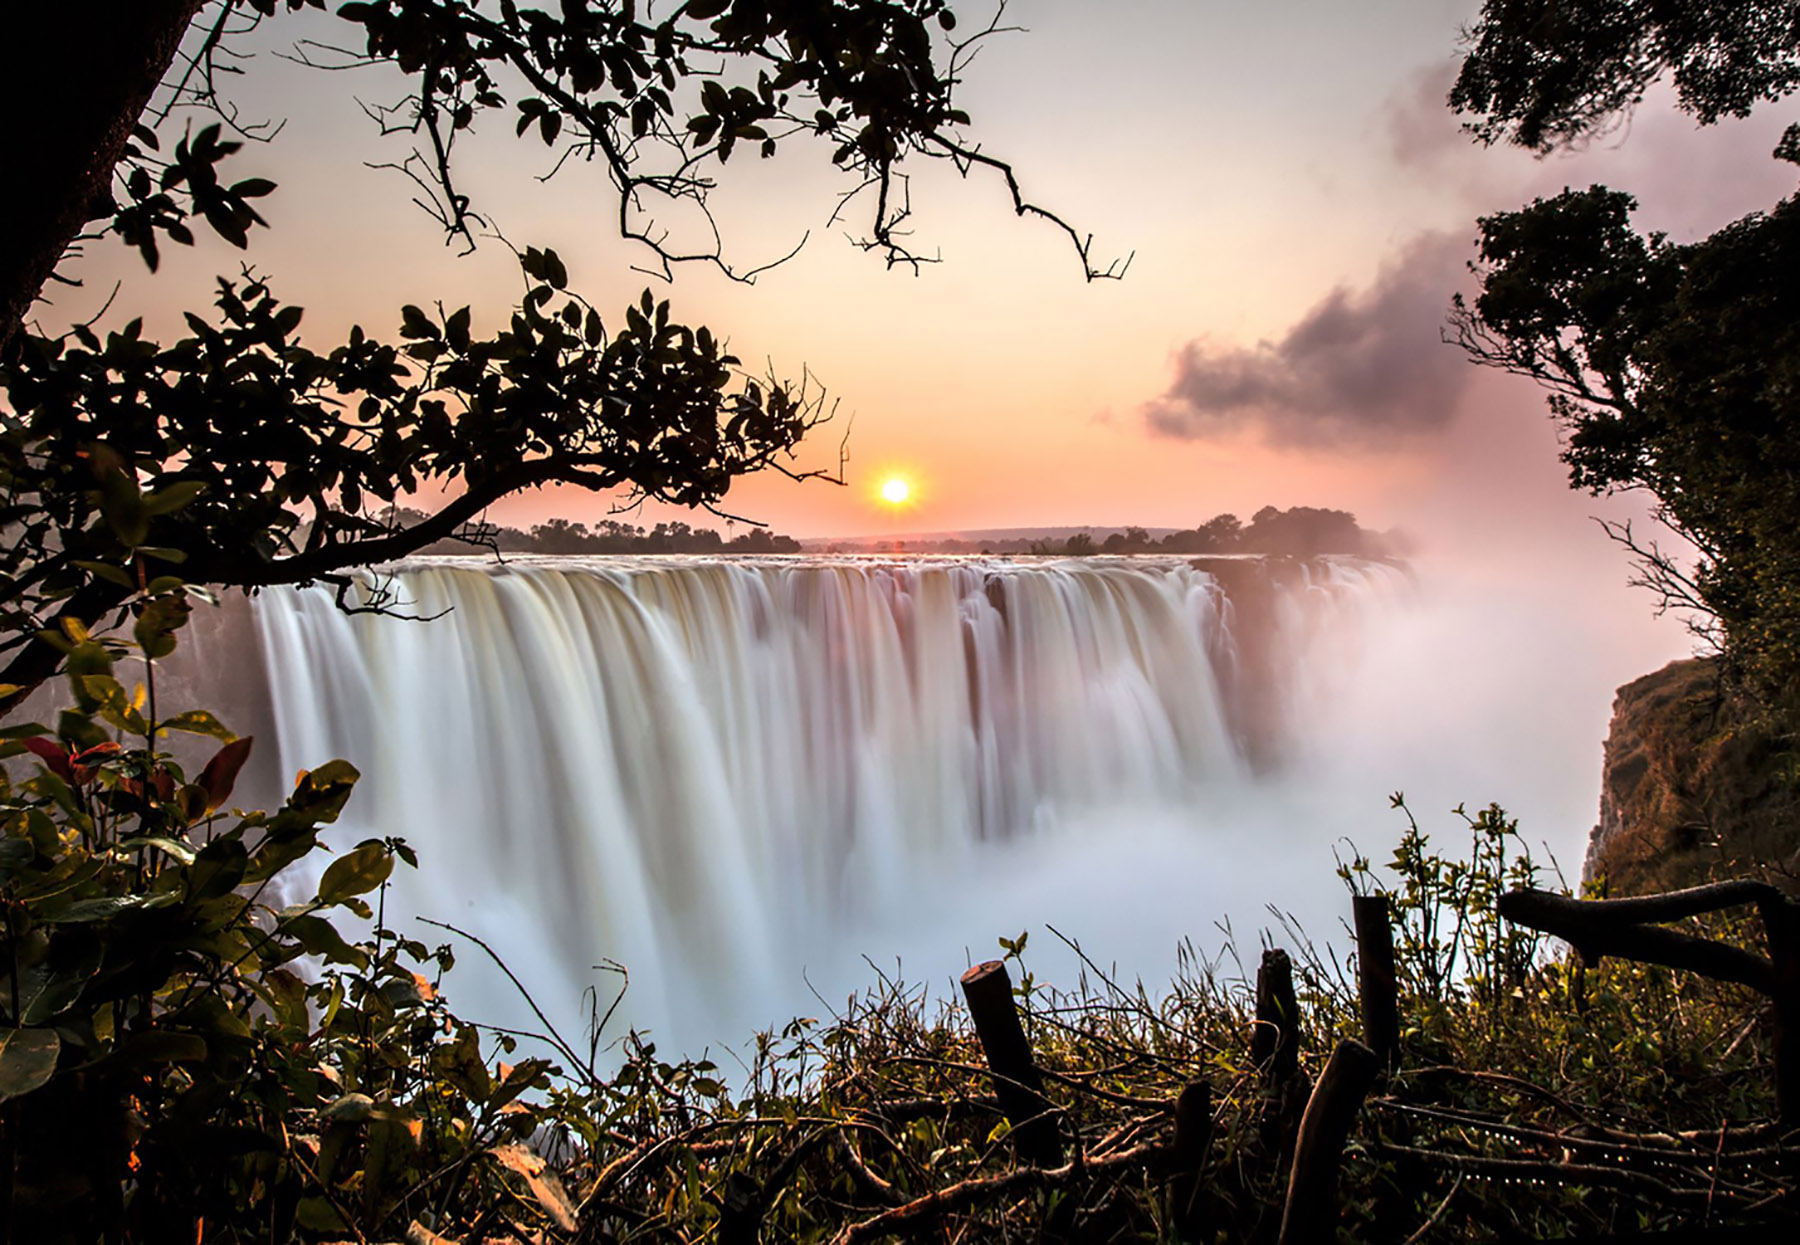 Sunrise at Victoria Falls